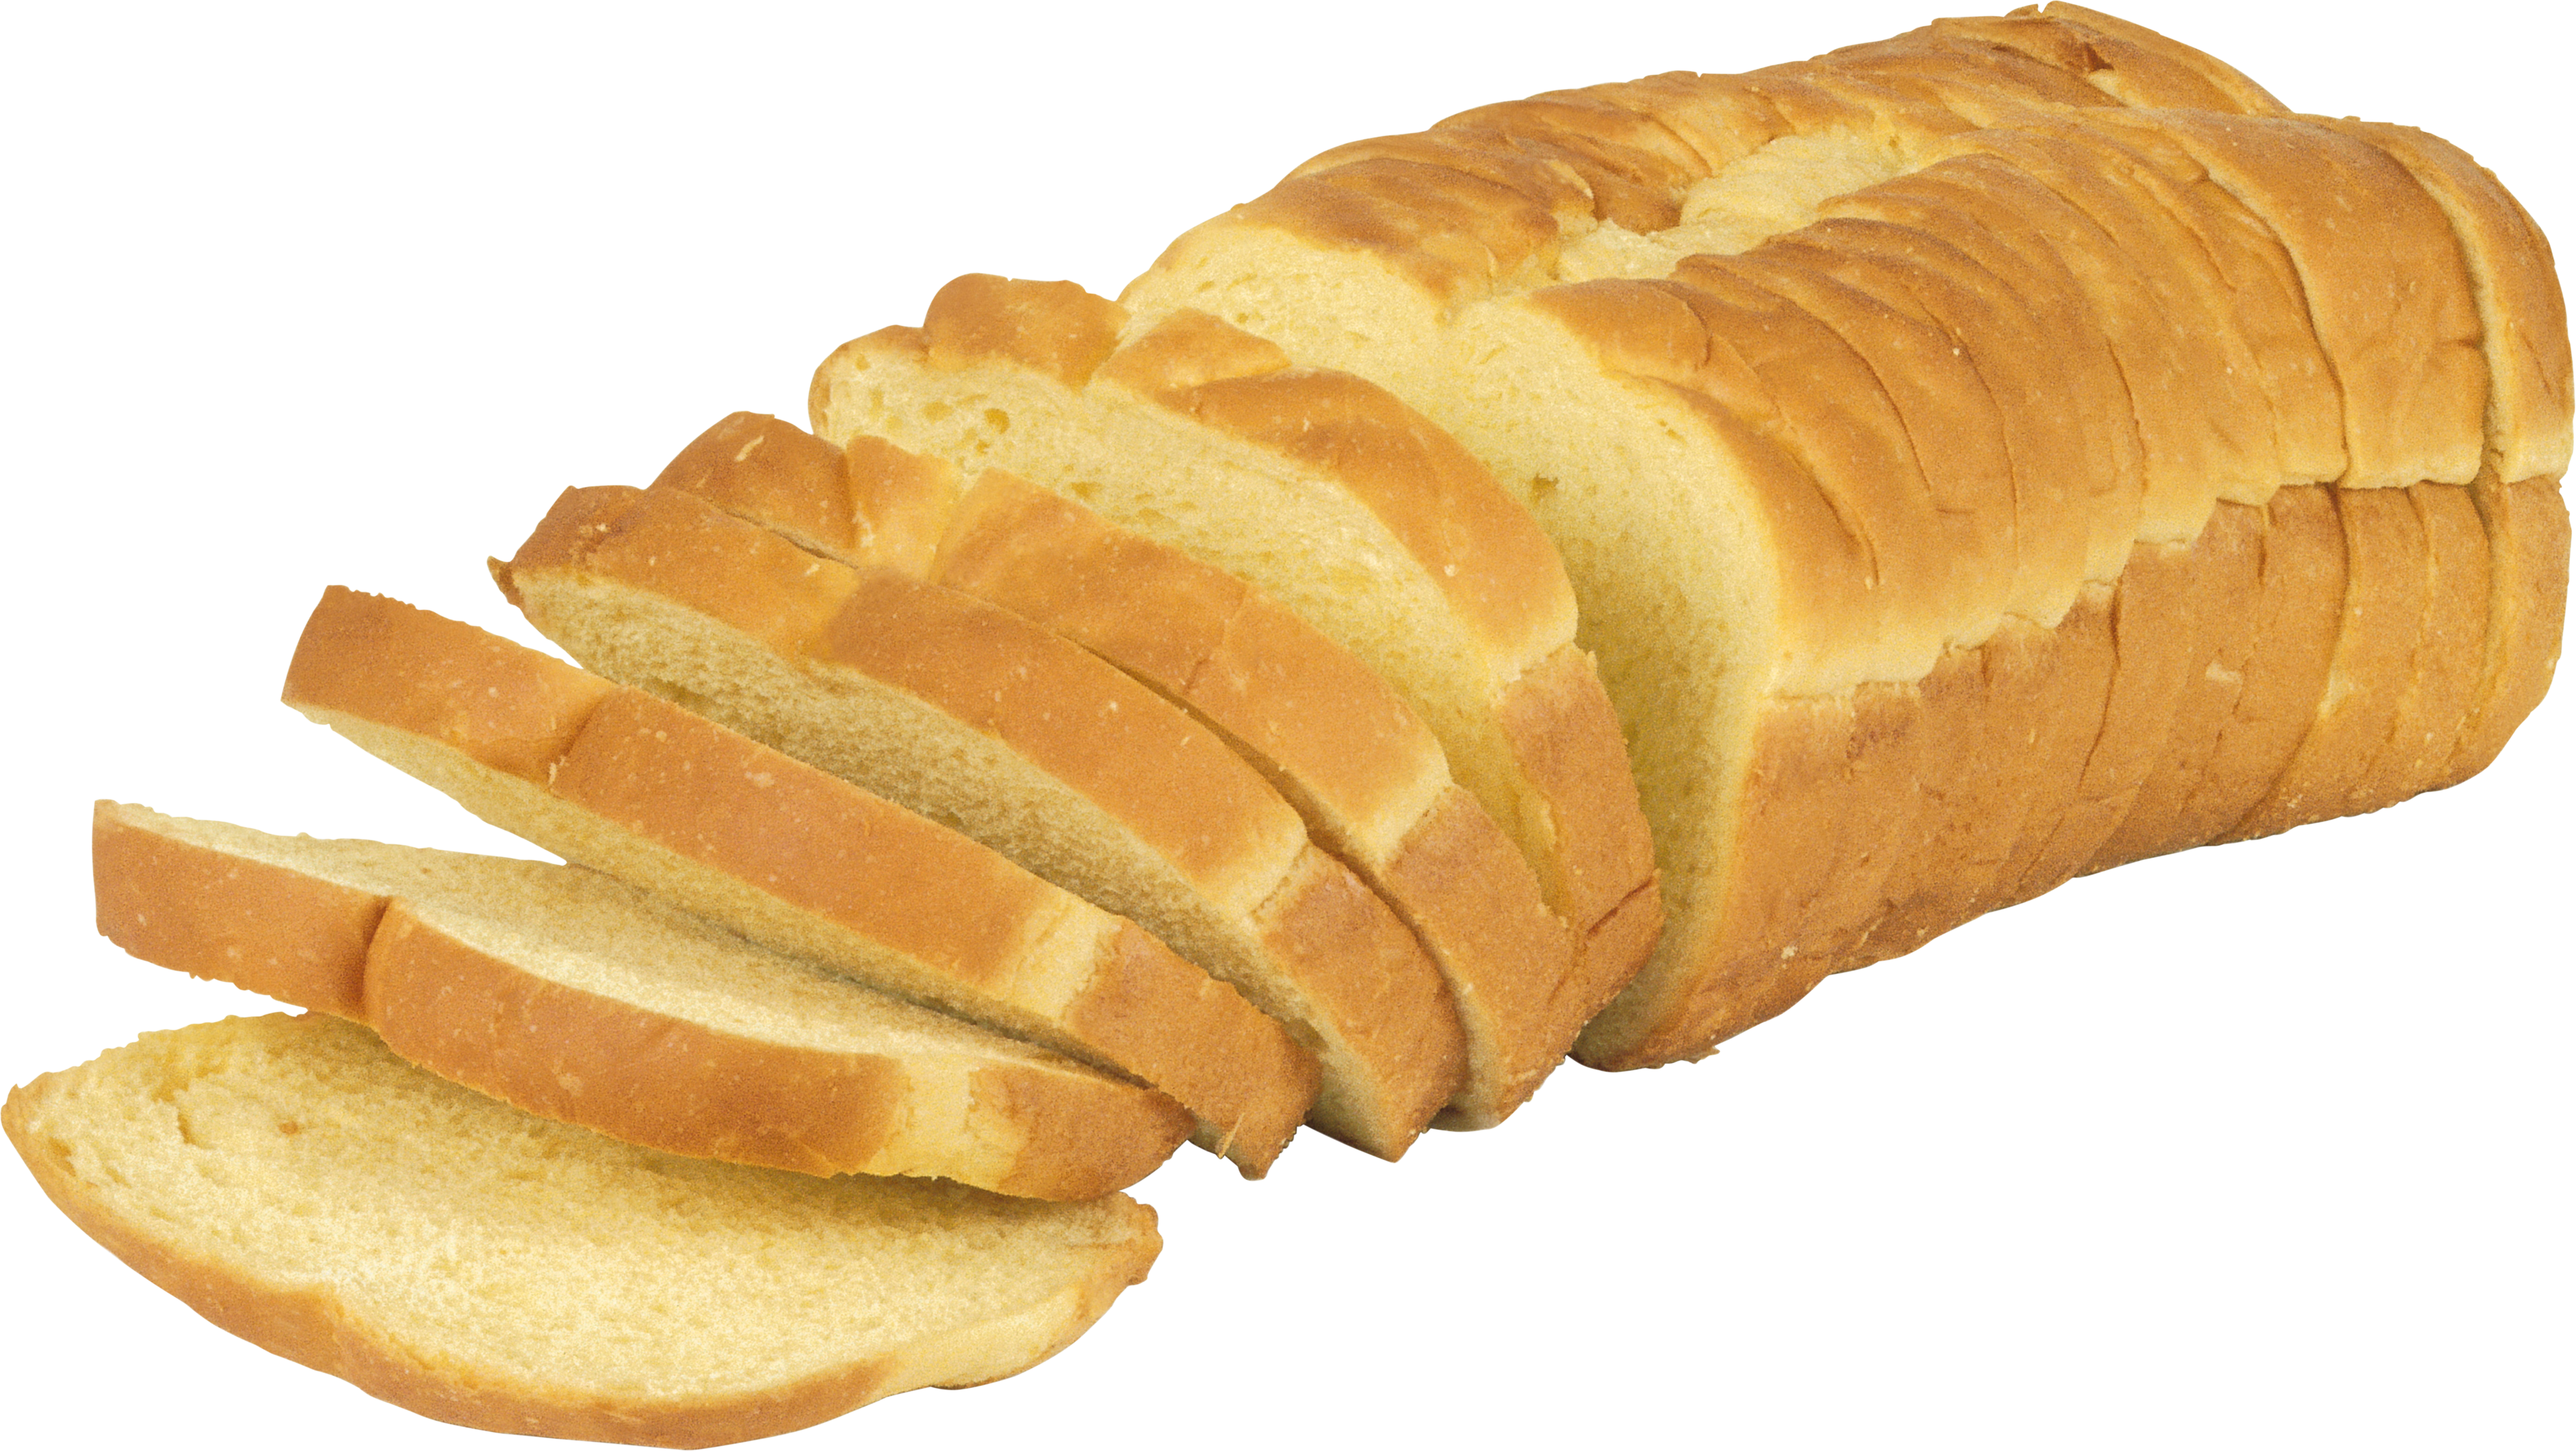 pin Bread clipart transparent background #9 - Bread HD PNG